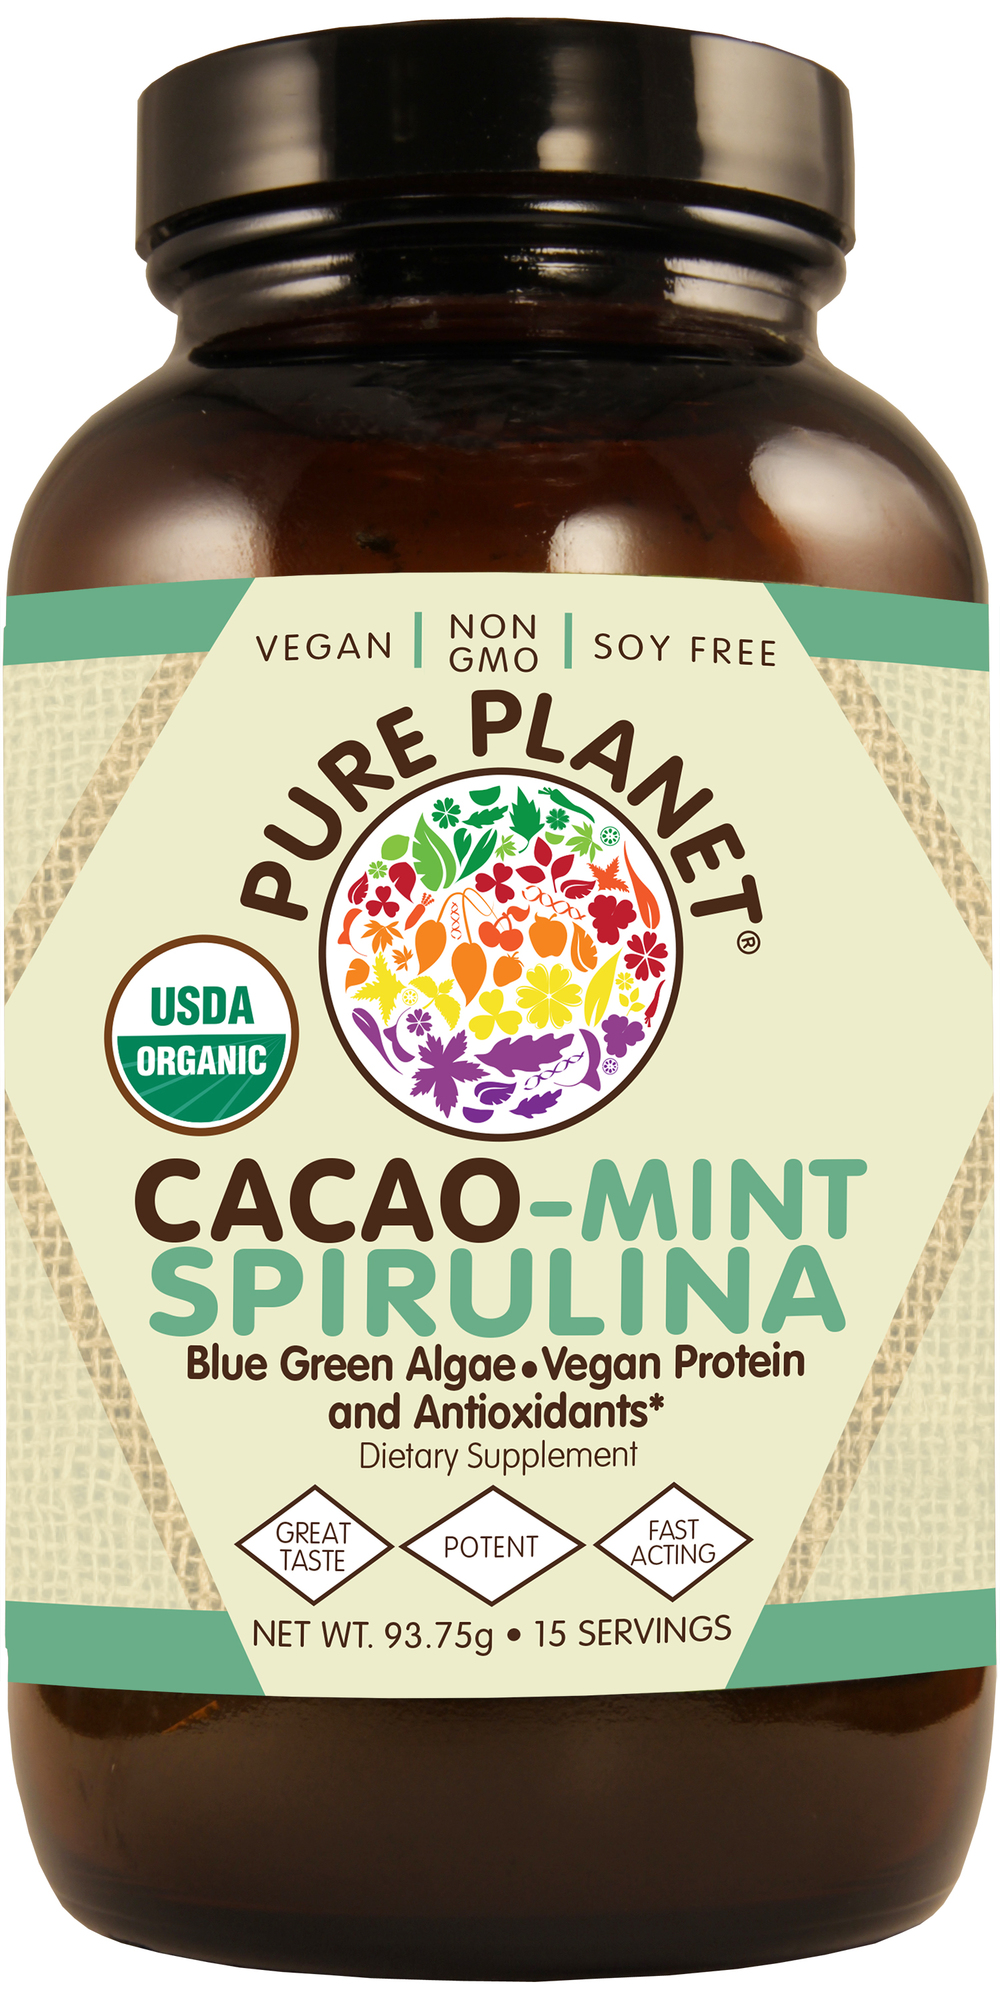 009140188384_Pure_Planet_Cacao_Mint_Spirulina_Organic_15_servings_93.75g.jpg